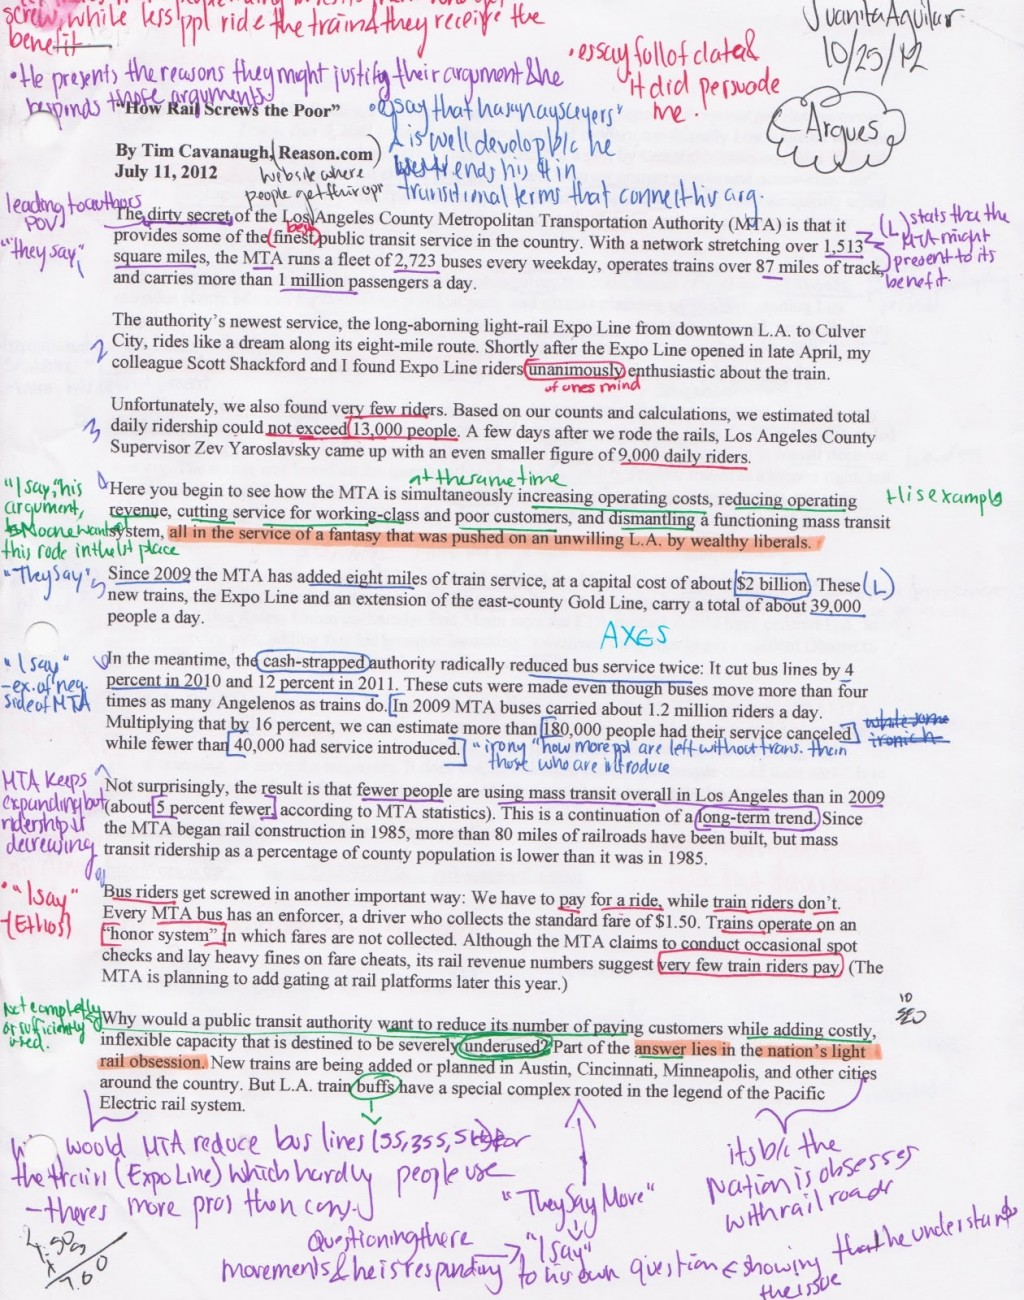 017 Annotation2 Essay Example How Tonotate Wondrous To Annotate An A Movie In Critical Large